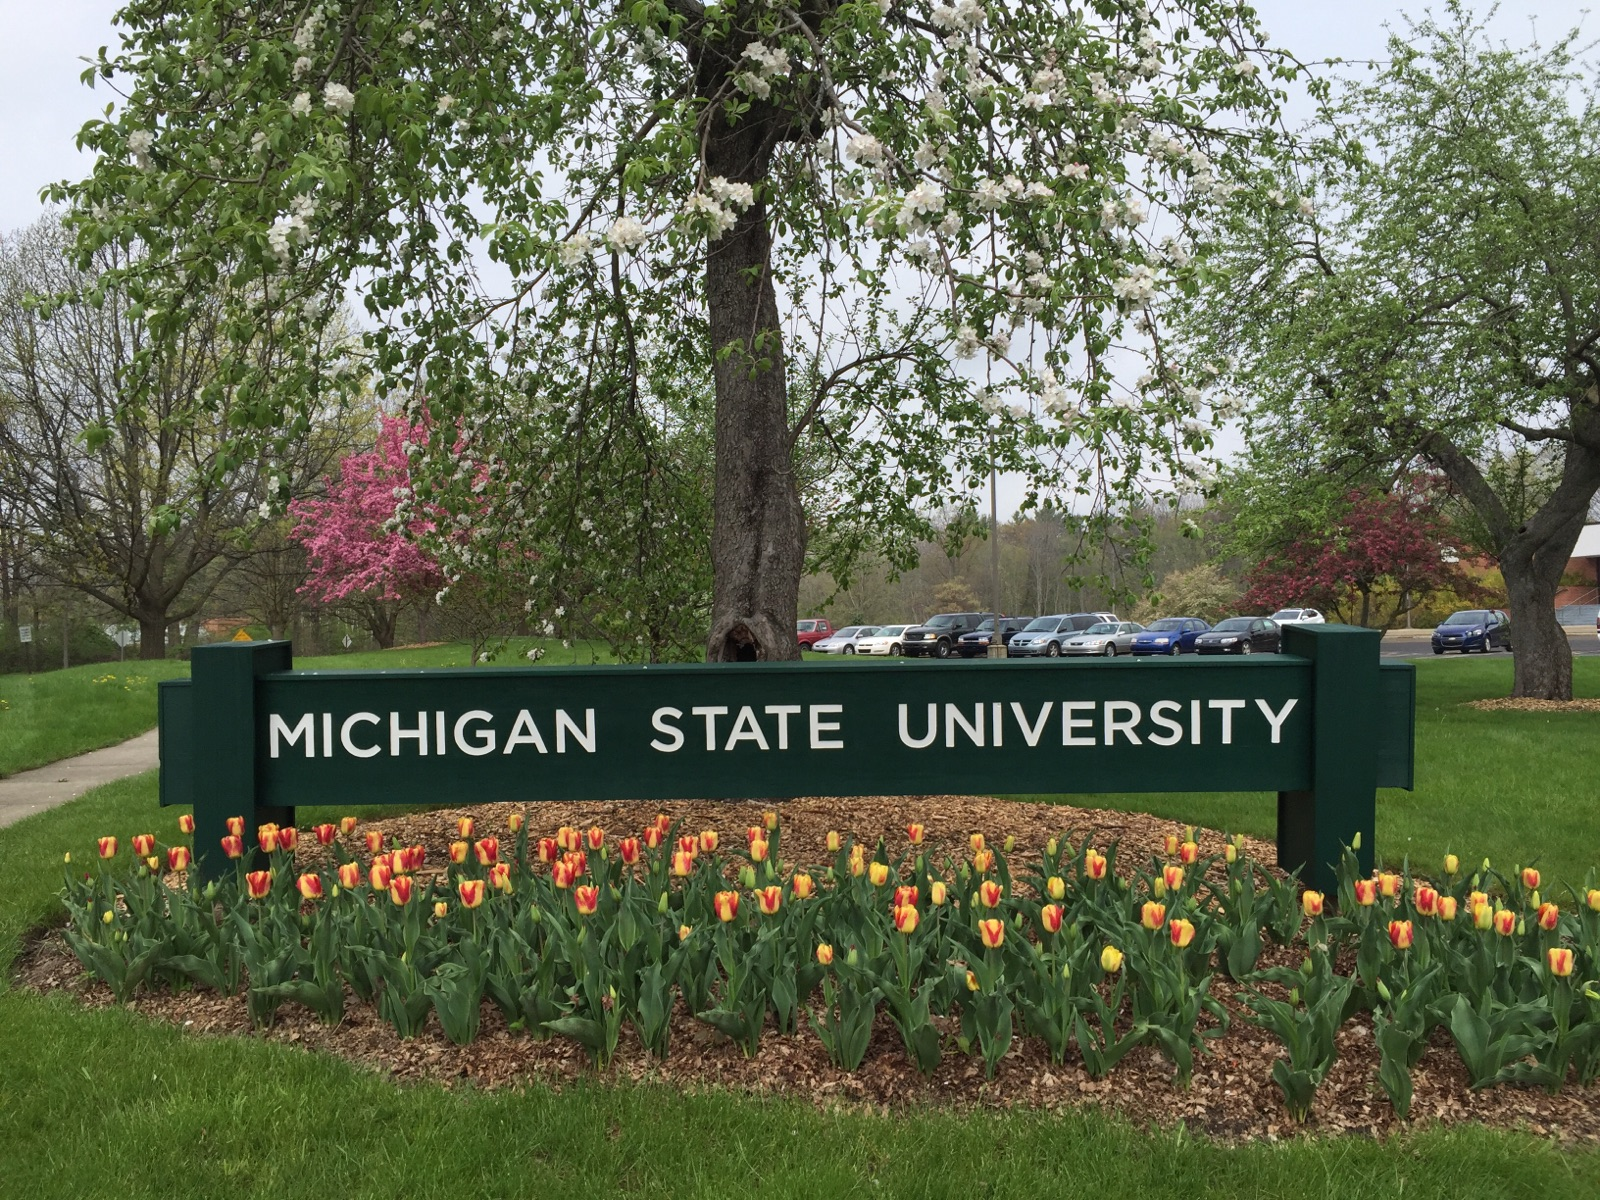 MSU monument sign in front of St. Andrews building